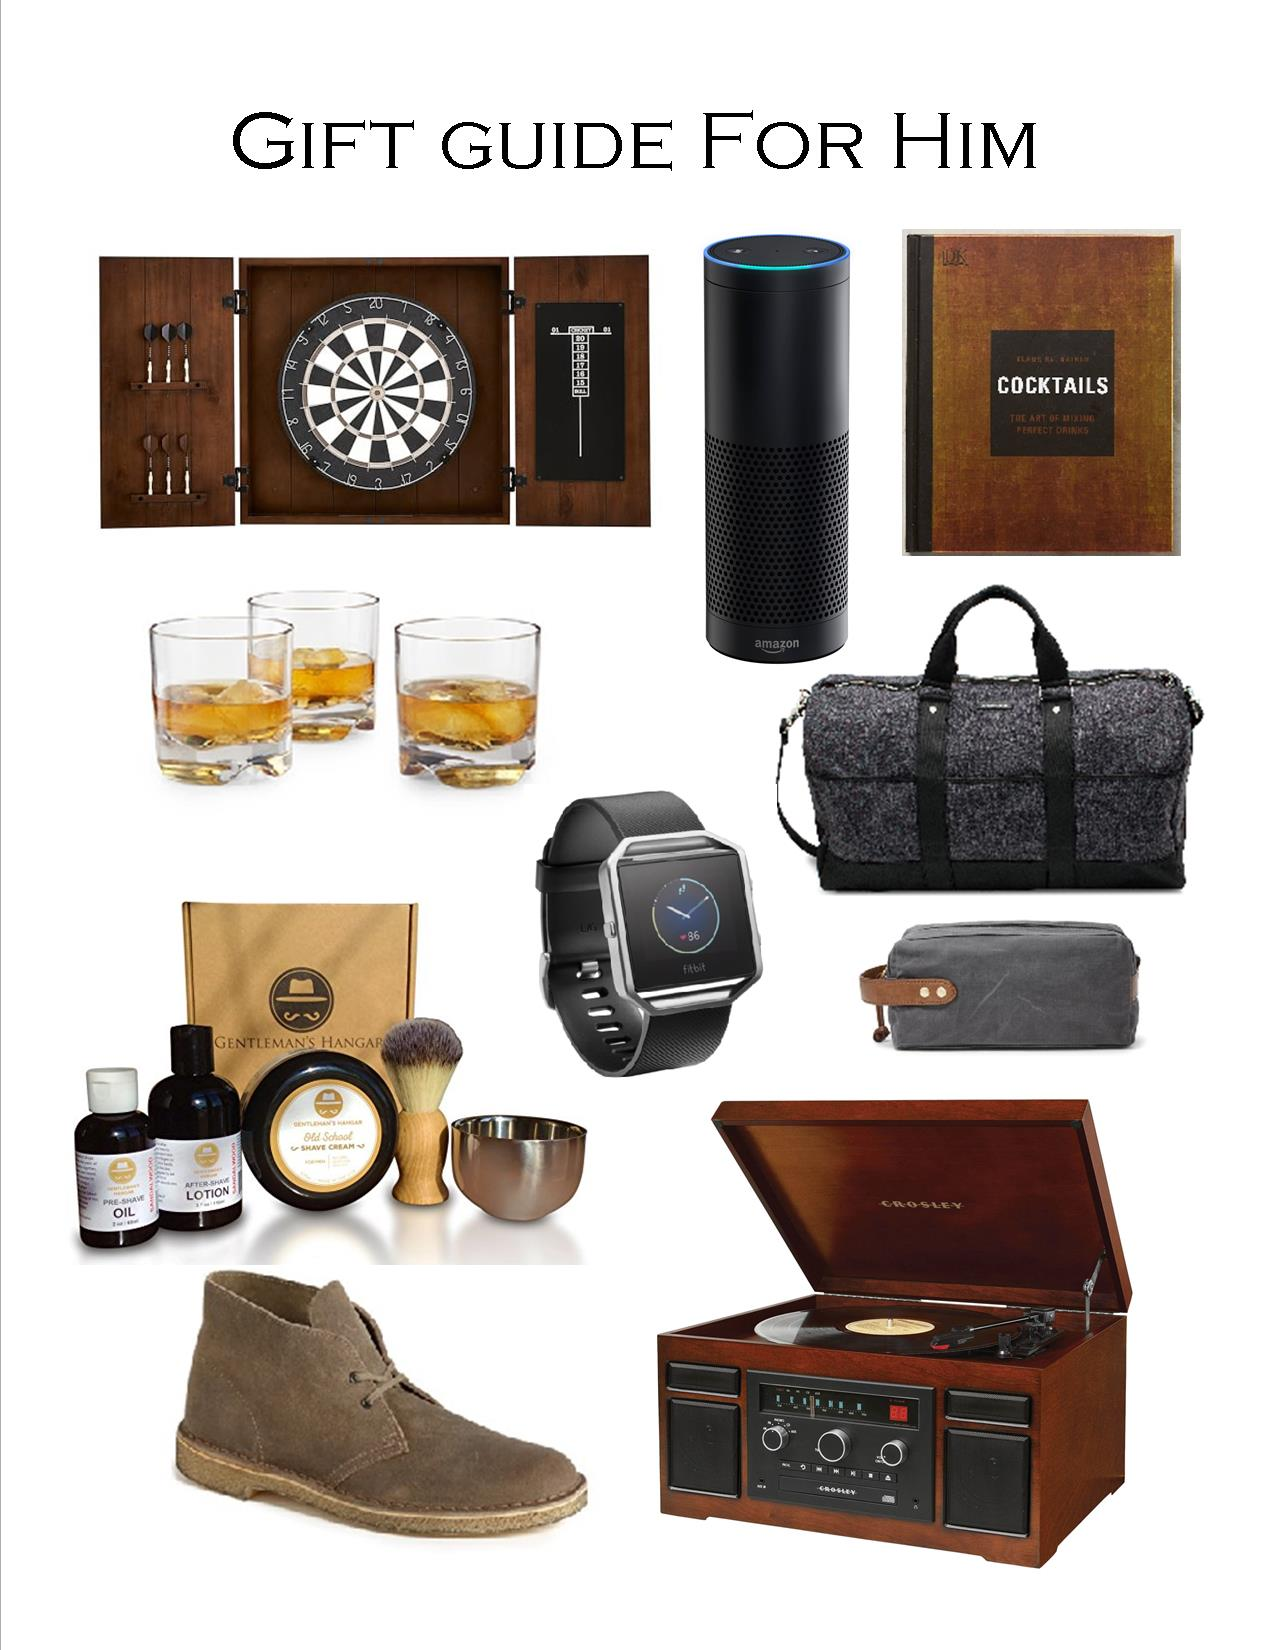 Perfect Gifts For Him On Christmas